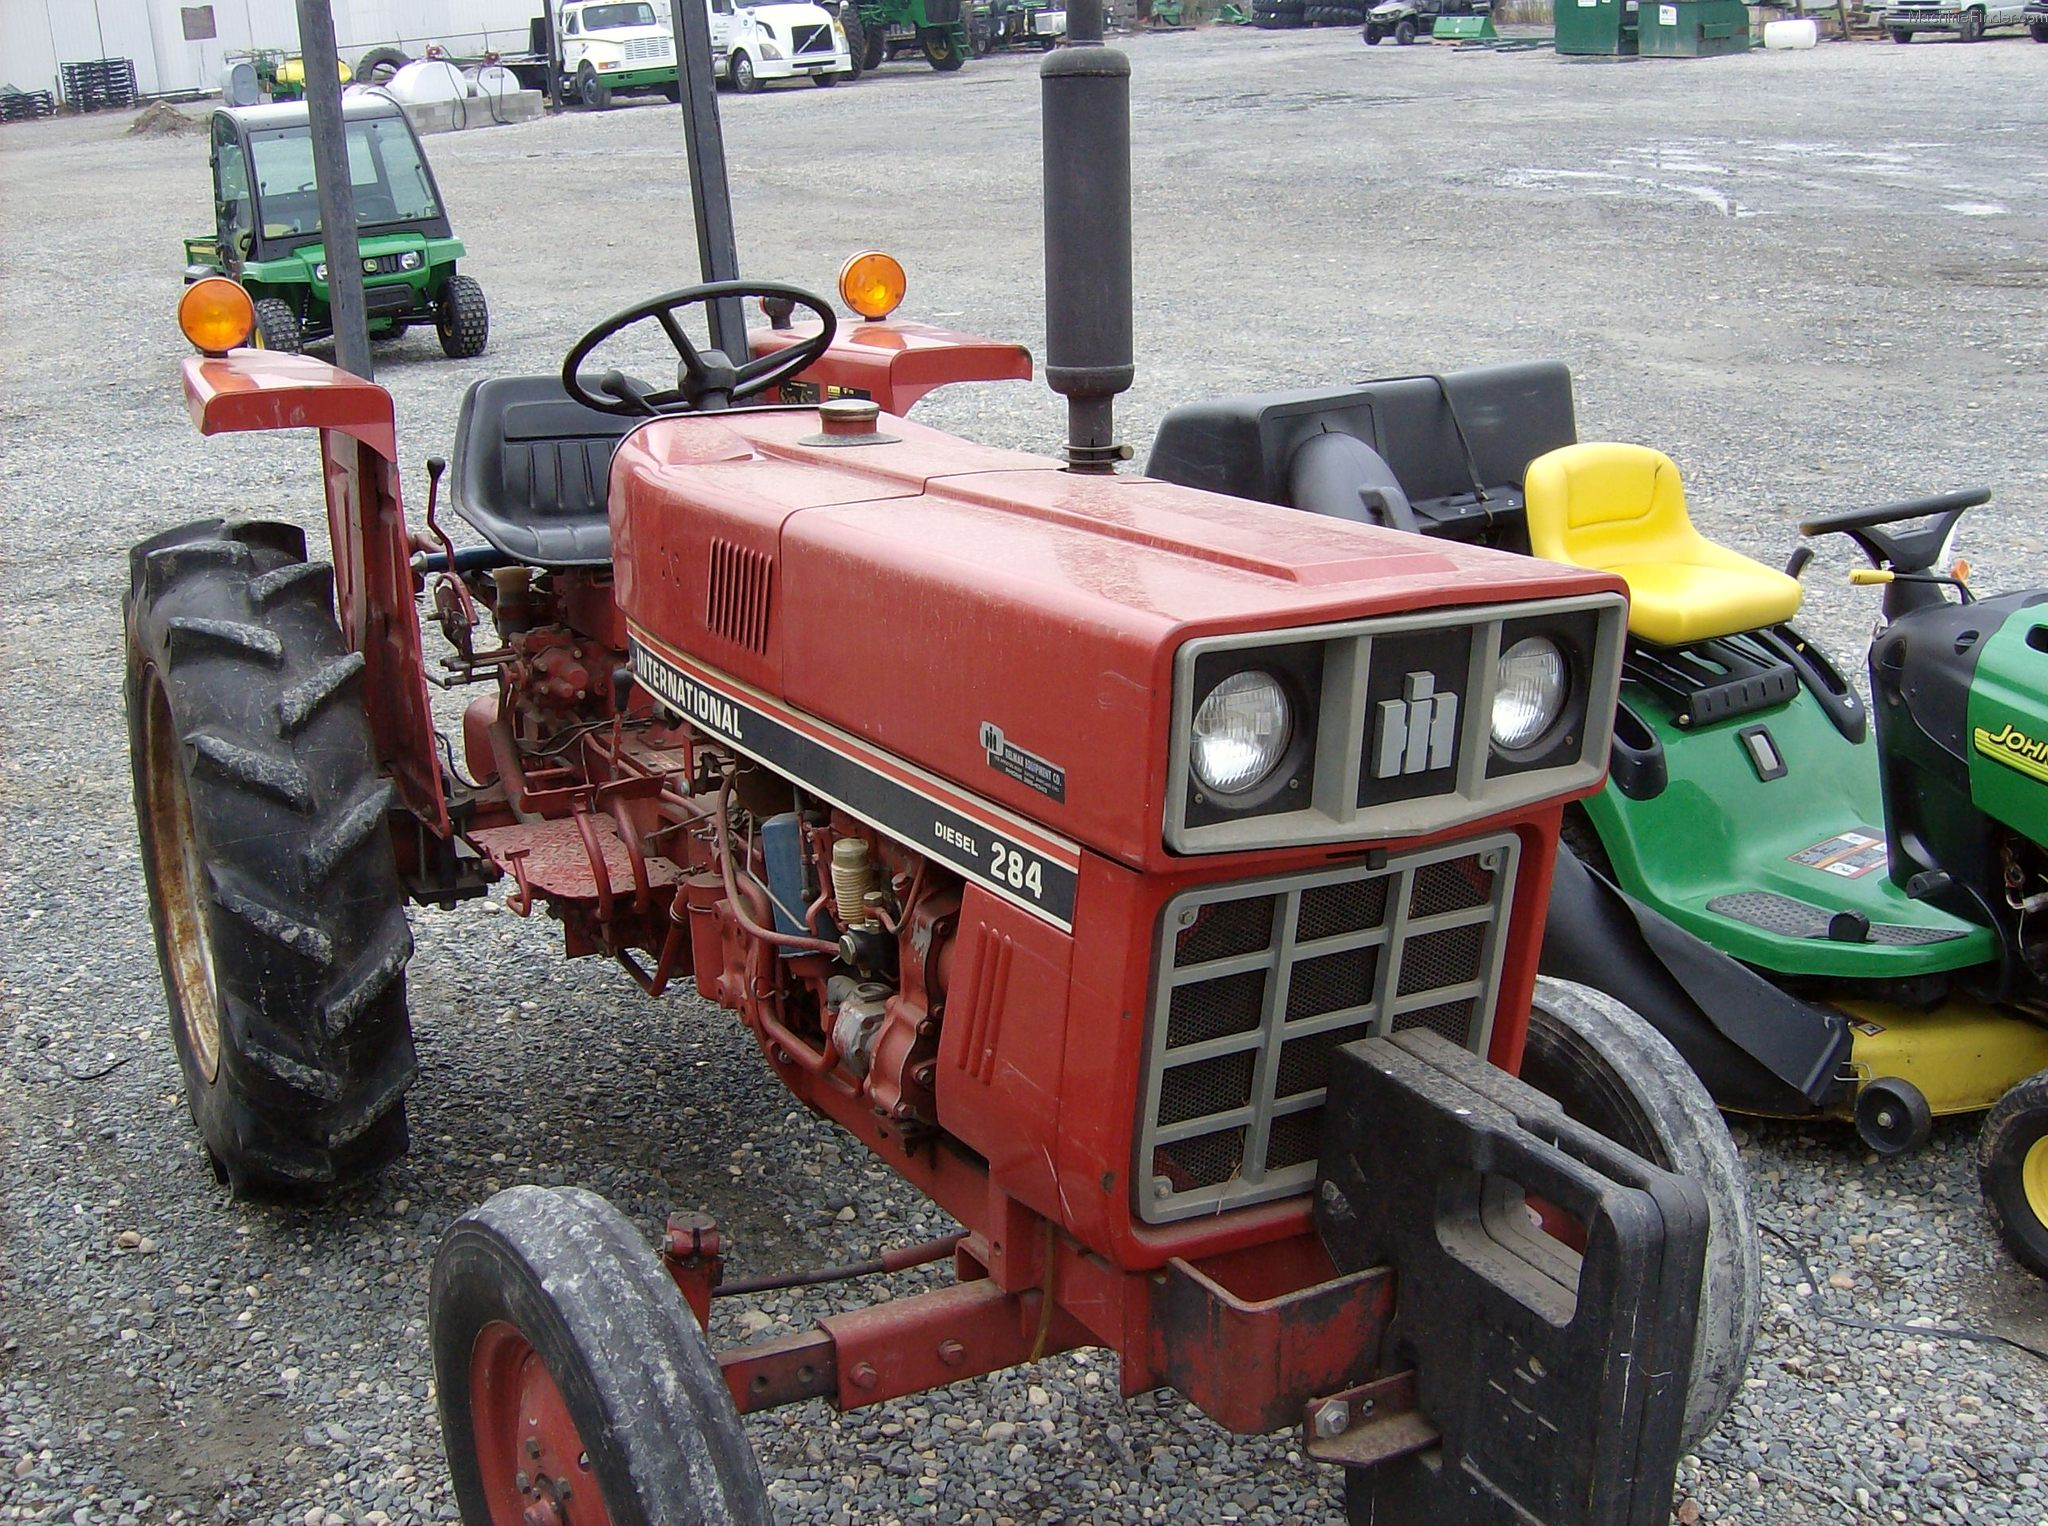 International 284 Tractor Parts : International tractors compact hp john